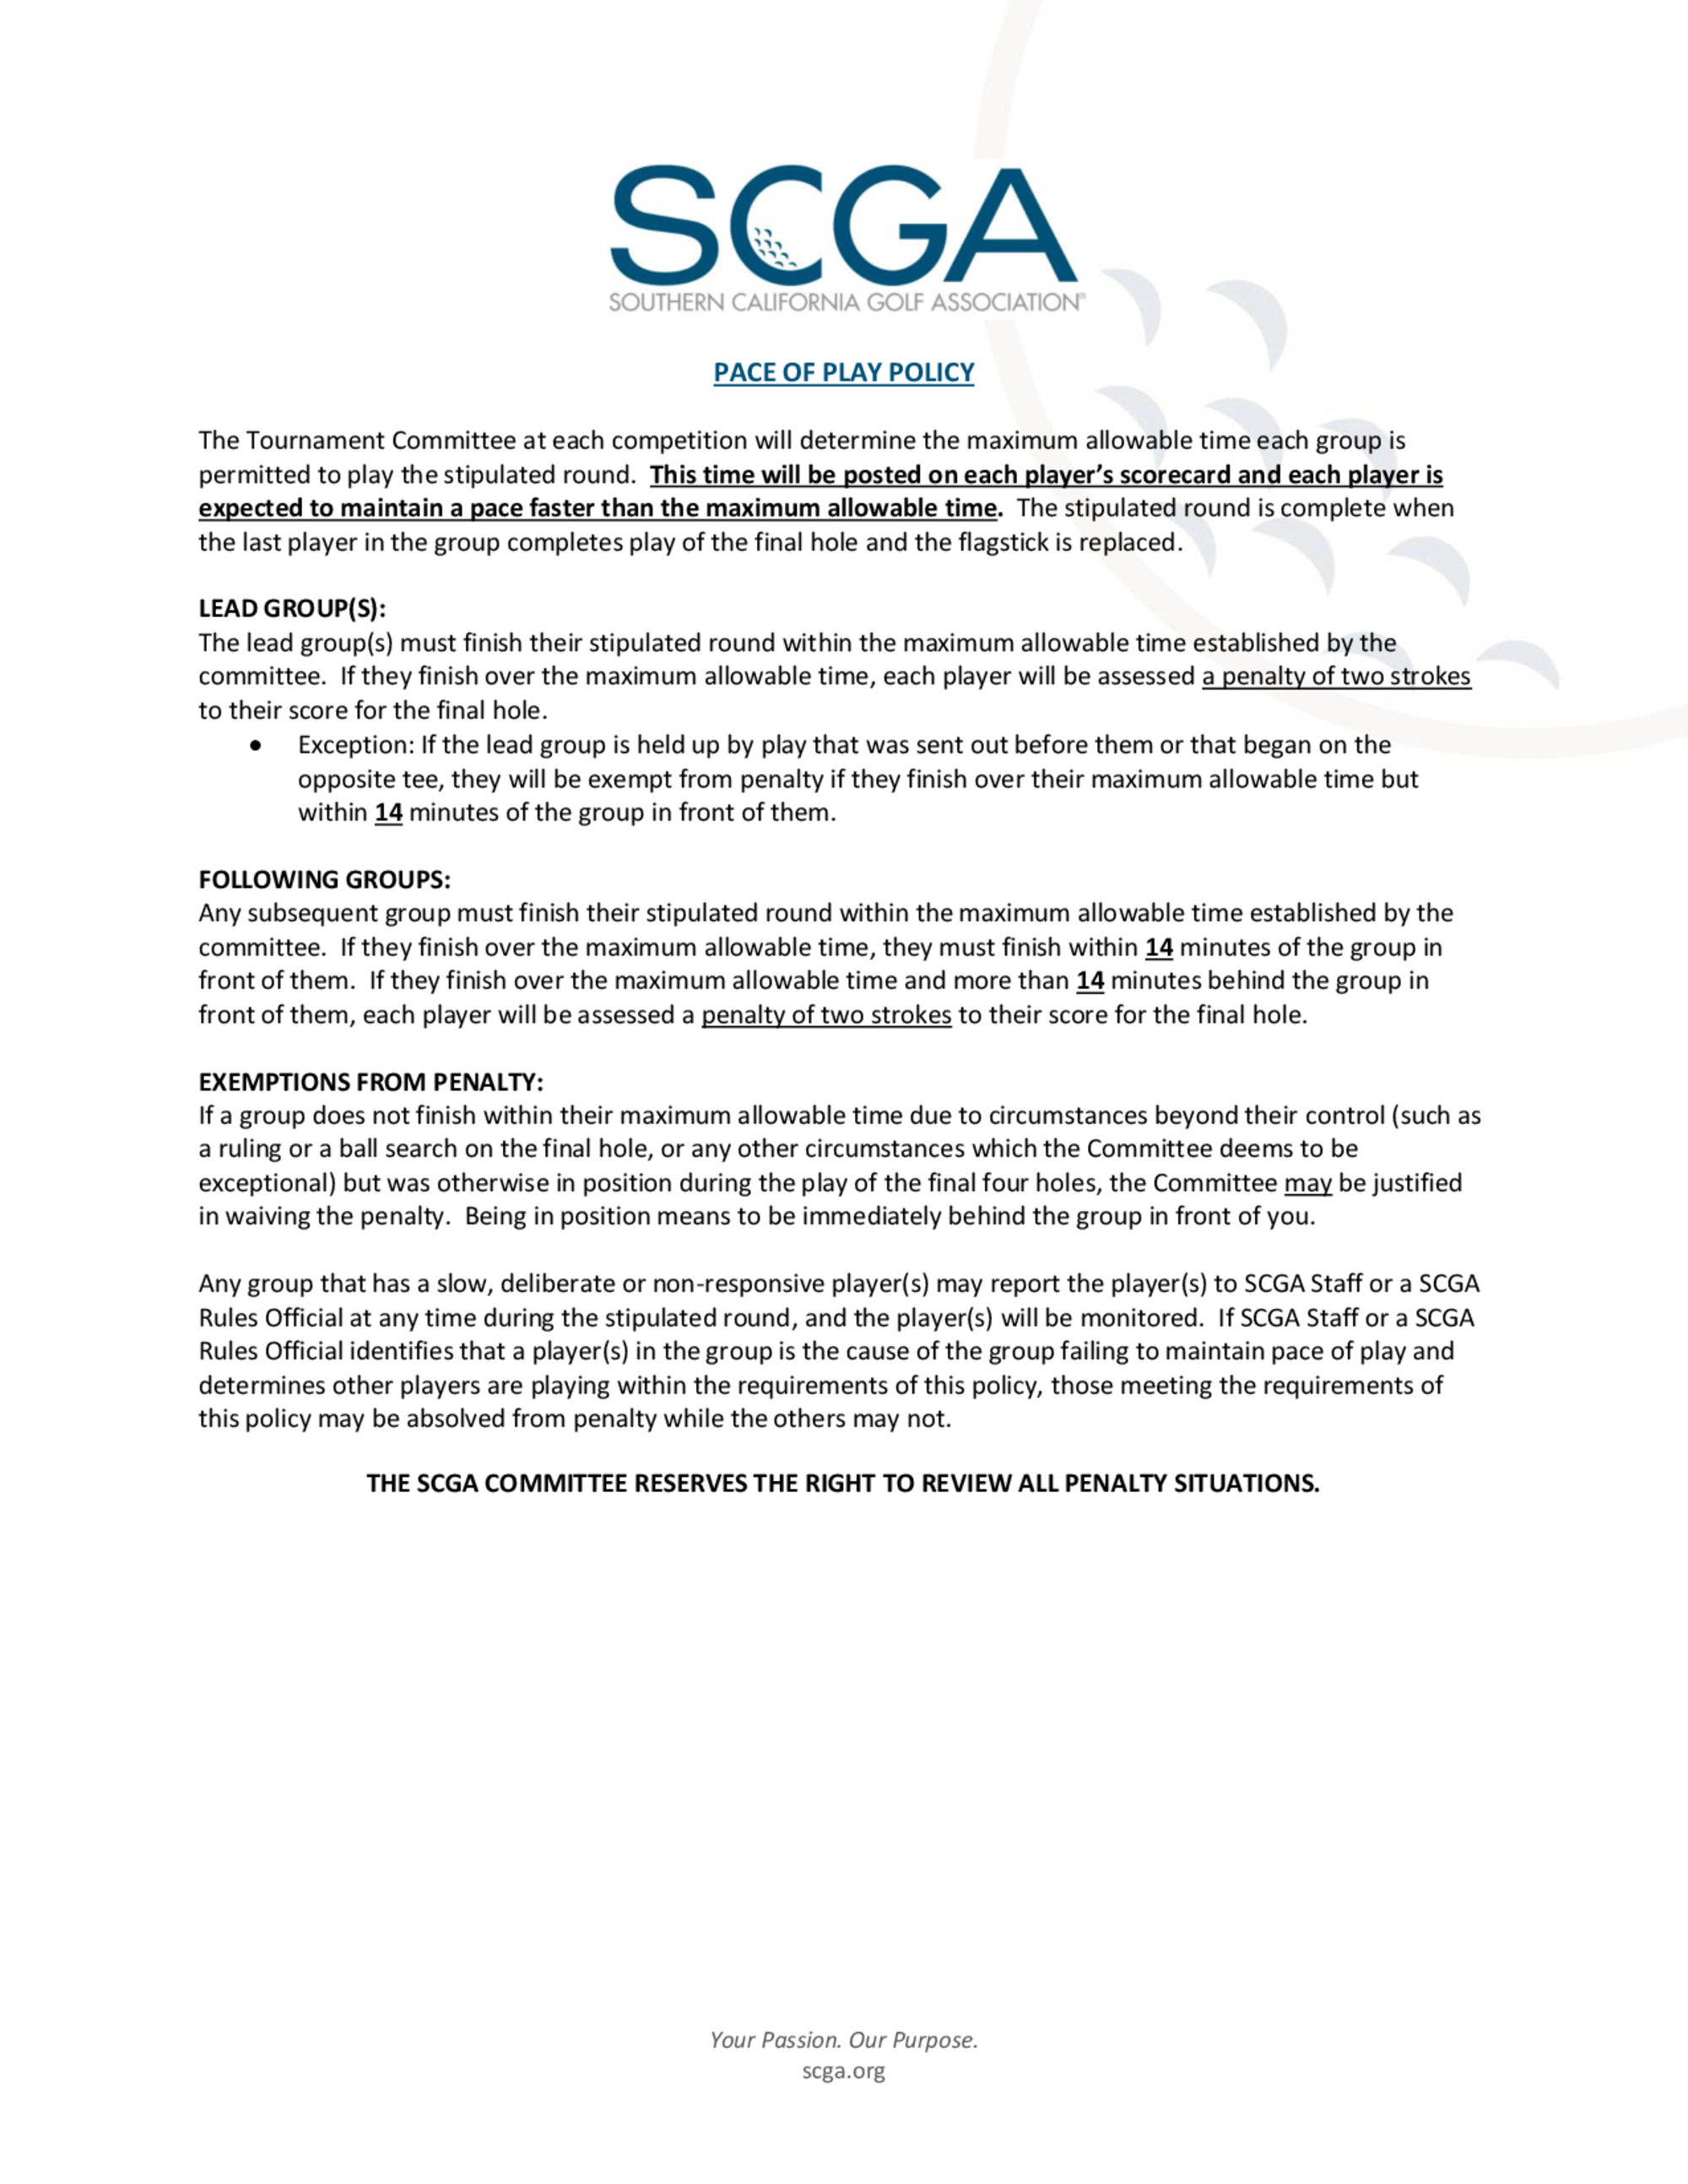 2018 scga pace of play policy   starting times 1